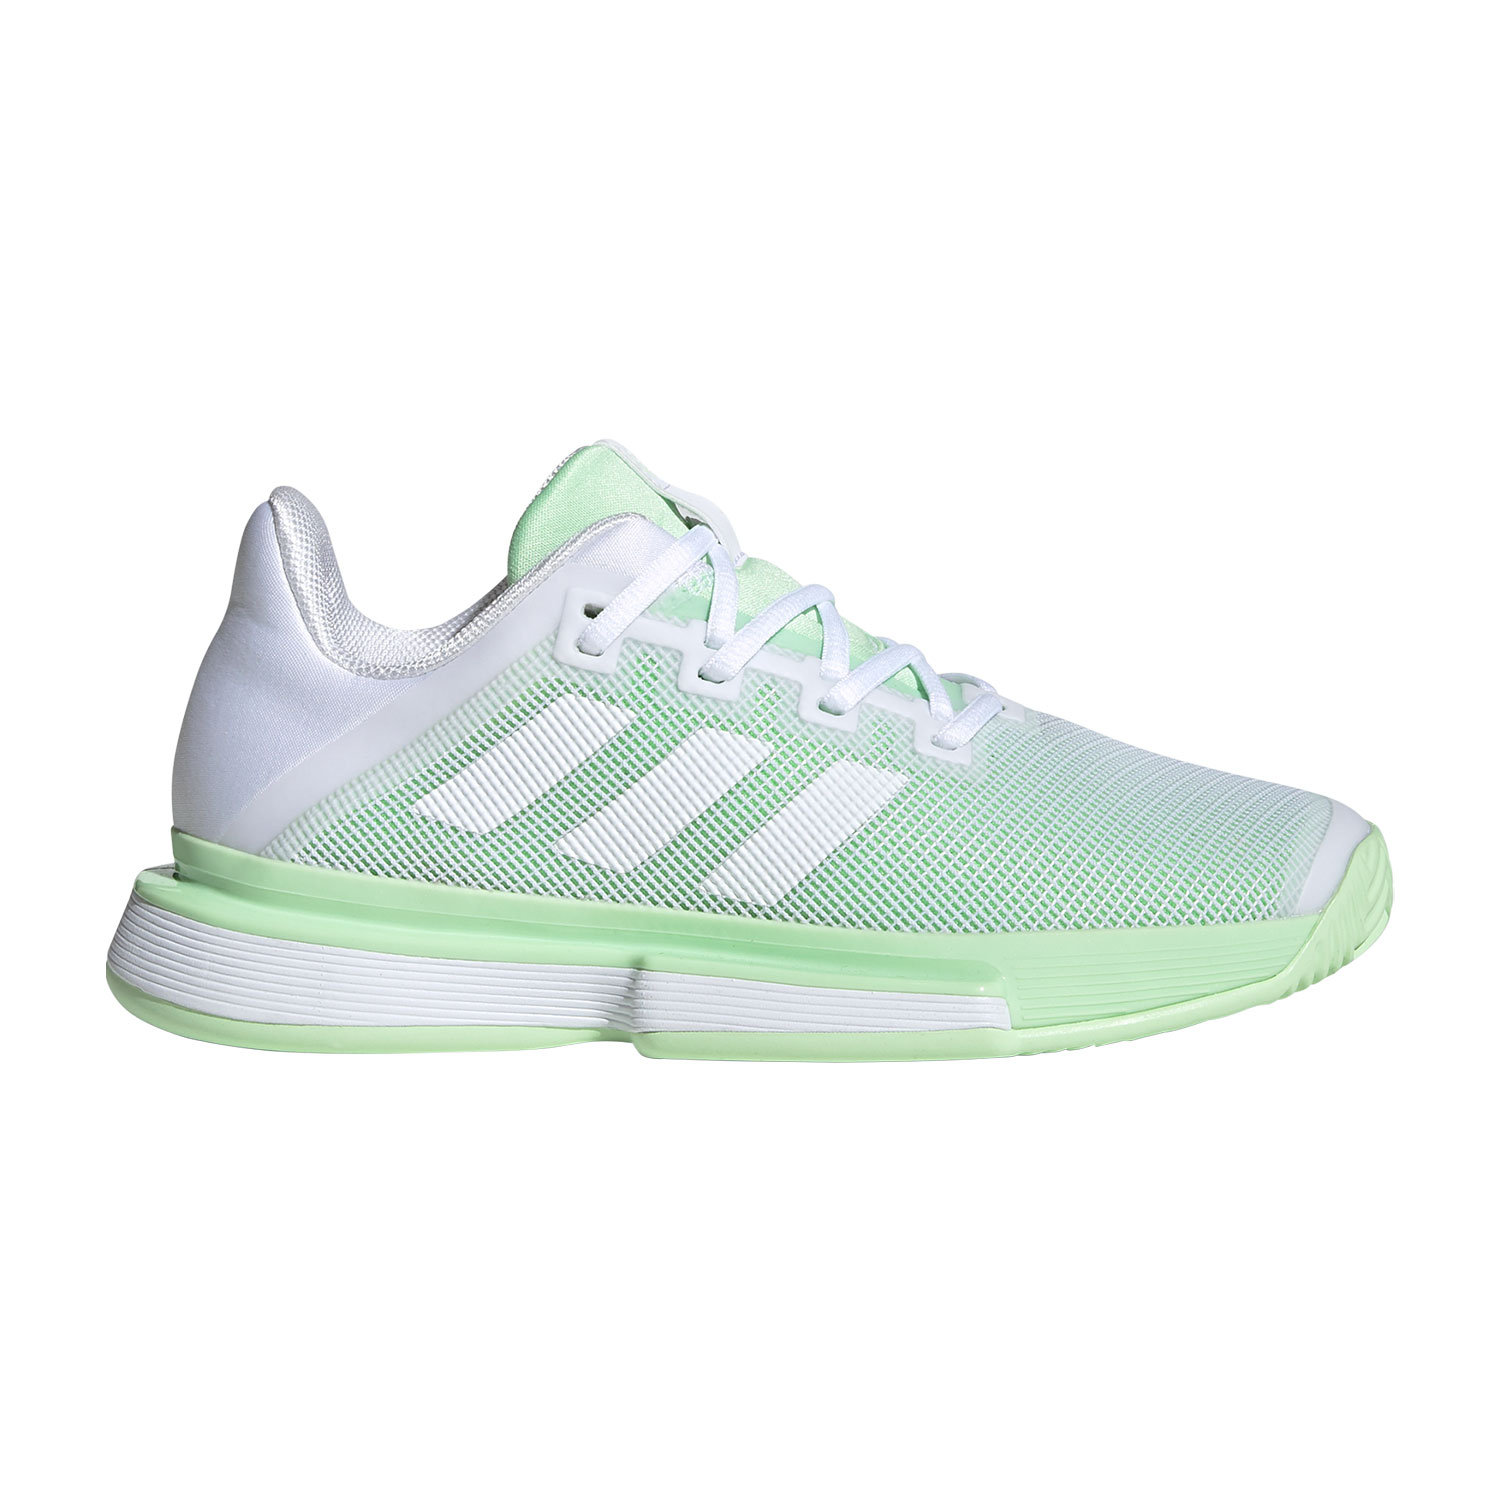 Adidas SoleMatch Bounce - Ftwr White/Glow Green